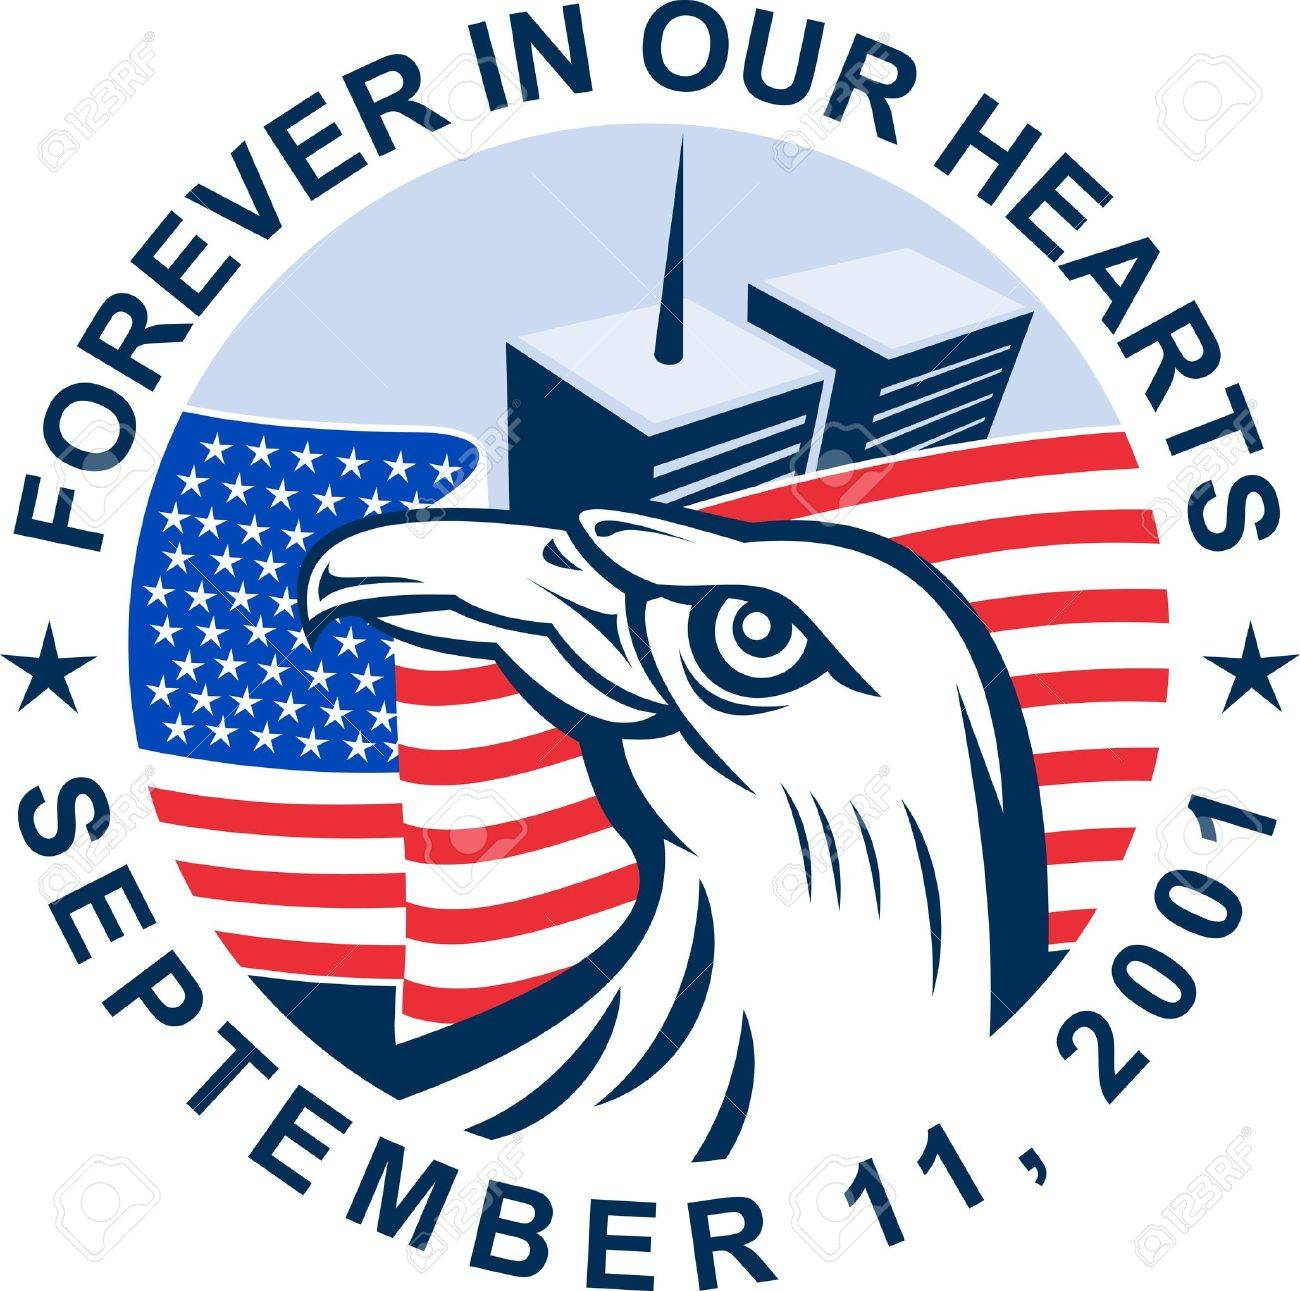 Graphic Design Illustration Of 9/11 Memorial Showing Bald Eagle.